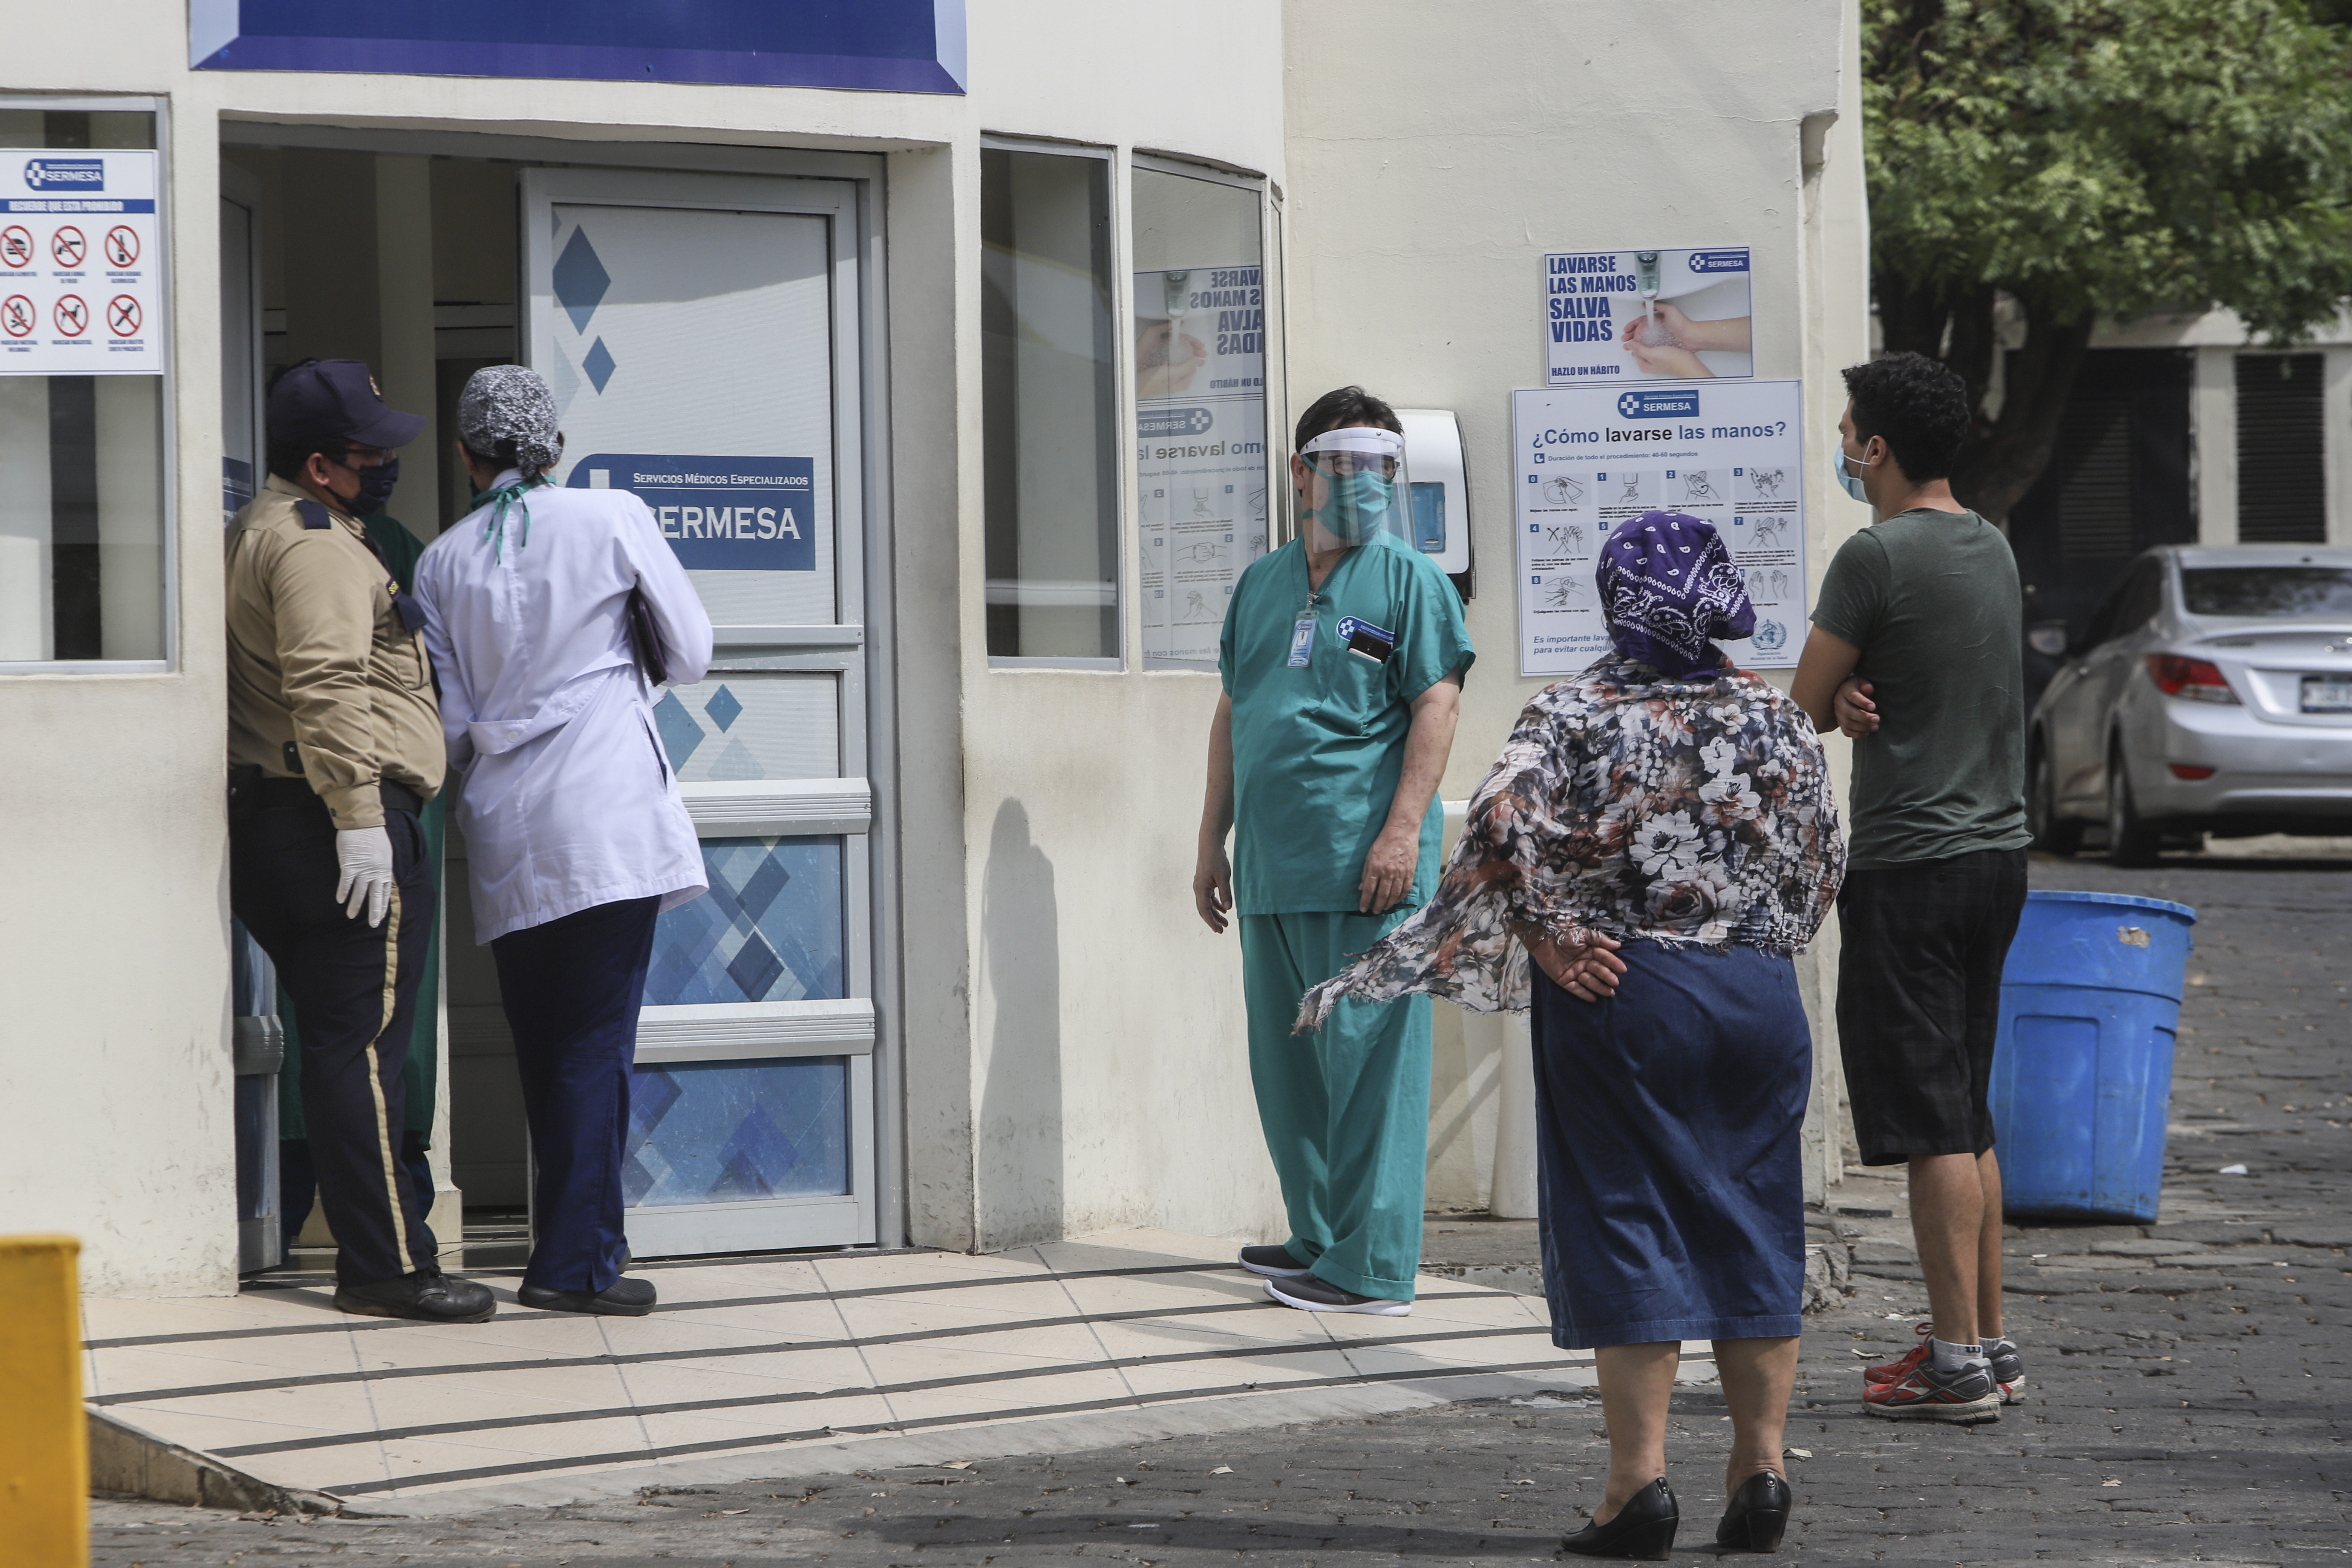 A medical worker at the entrance of the SERMESA hospital in Managua, Nicaragua